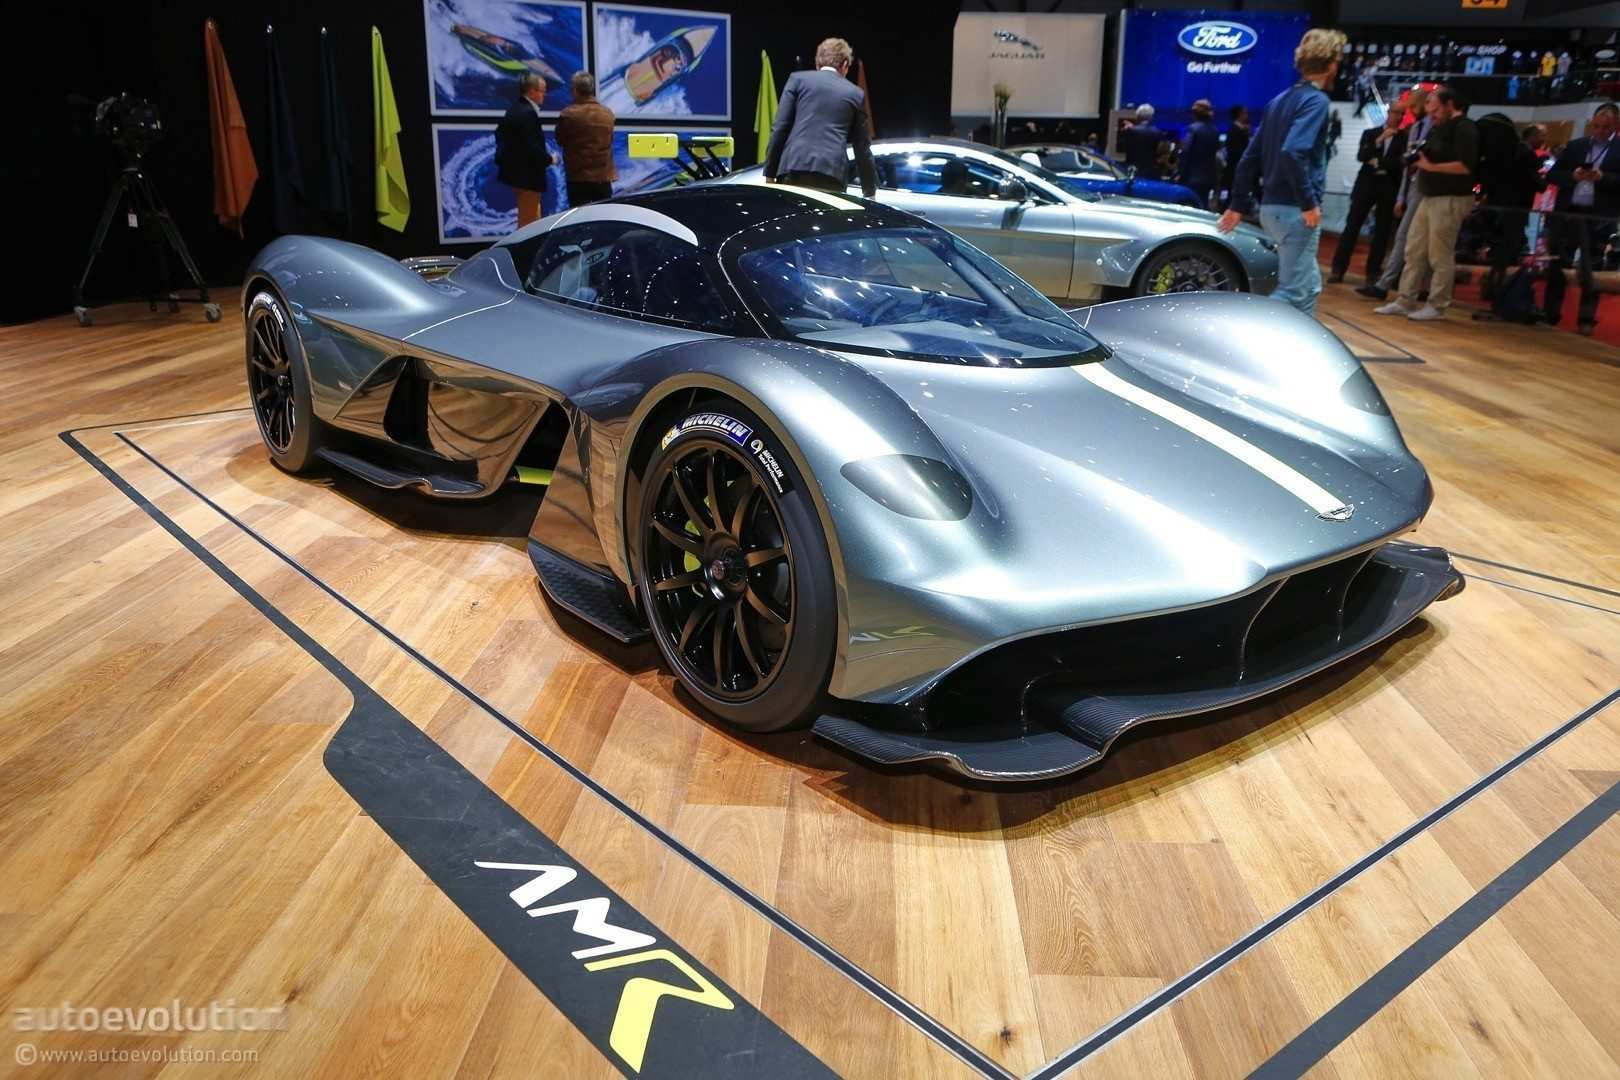 48 Best Review 2020 Aston Martin Valkyrie Interior by 2020 Aston Martin Valkyrie